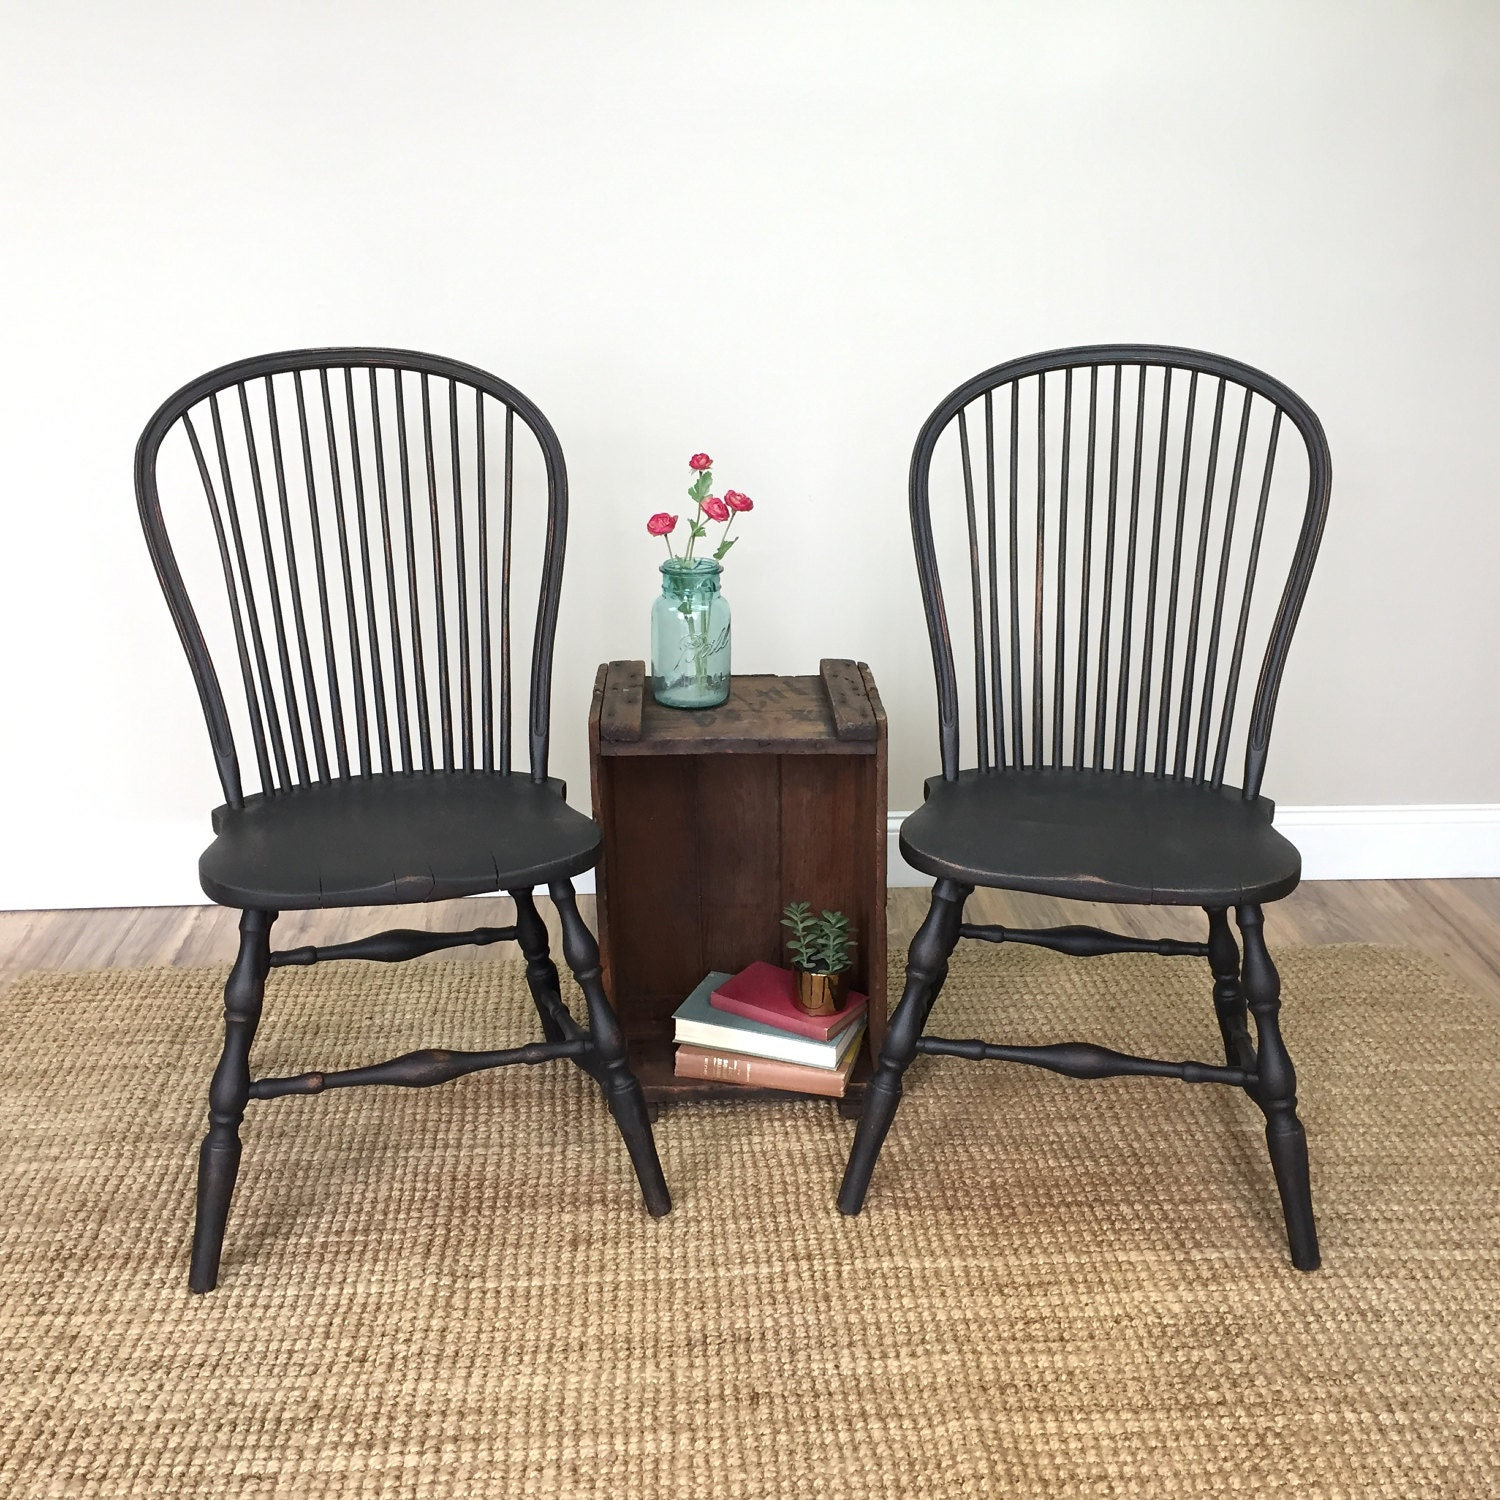 Black Windsor Chairs   Farmhouse Dining Chairs   Antique Wooden Chairs    Spindle Chair   Country Cottage Furniture   Fixer Upper Style